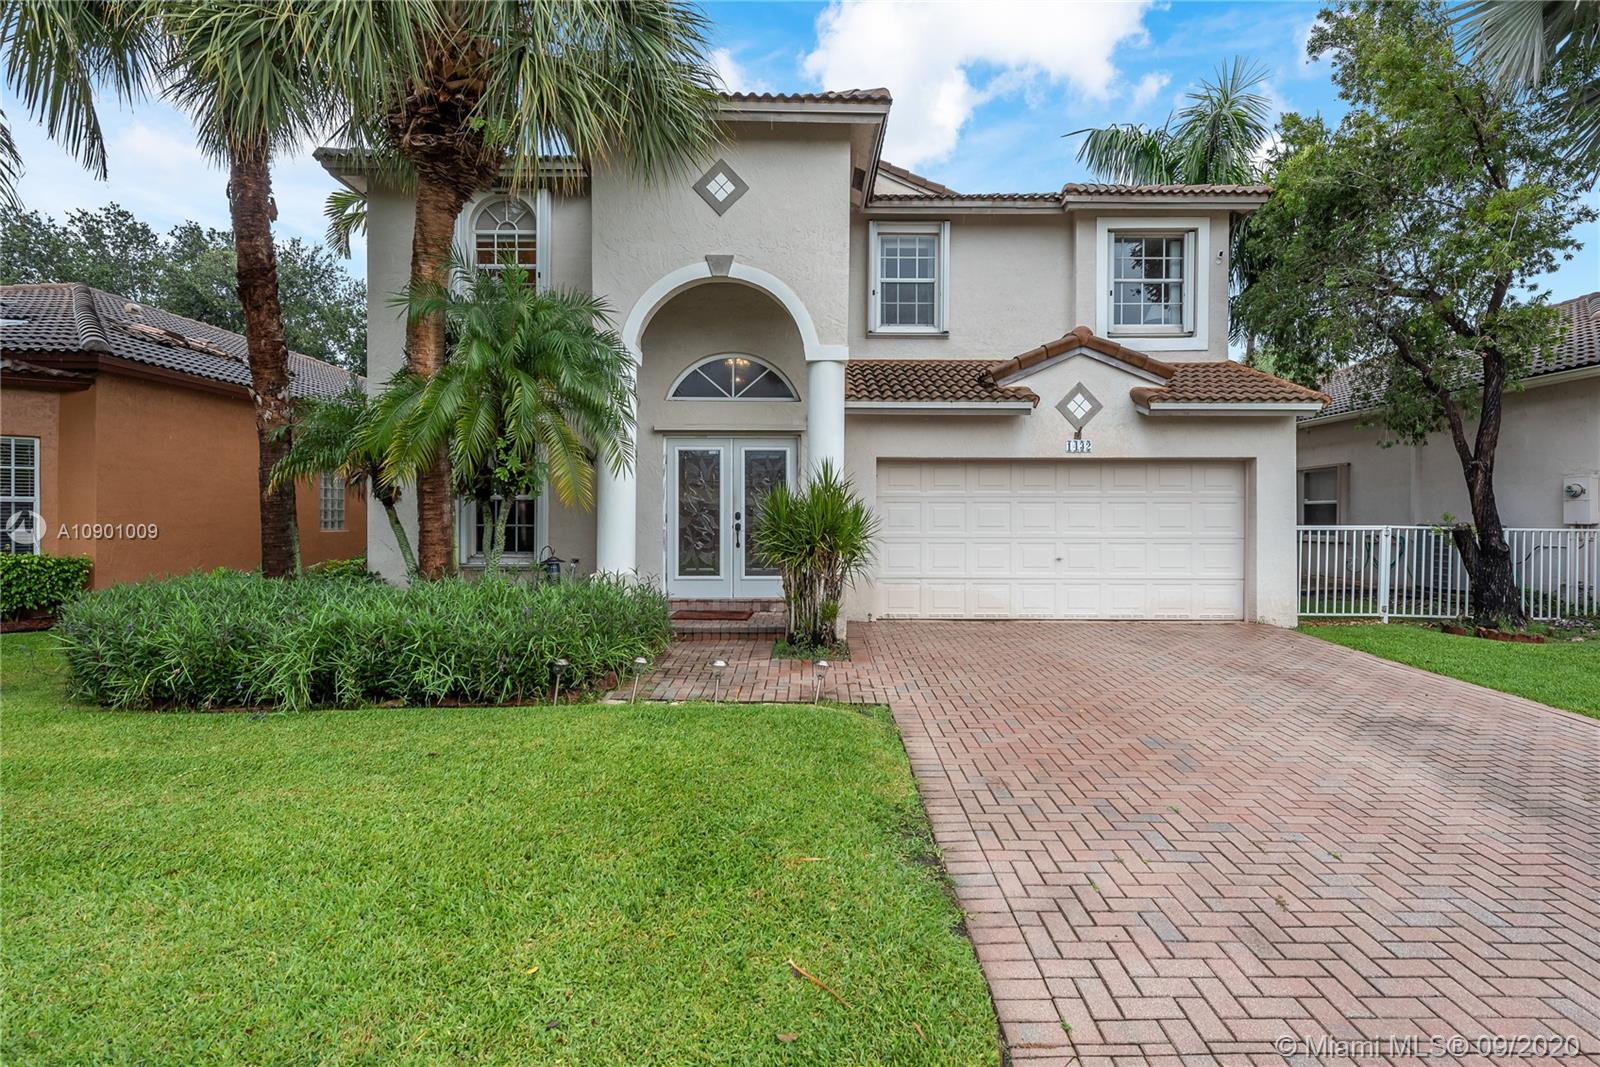 Grand opportunity in Grand Palms! This spacious and true 5 bedroom (all upstairs) 3 full bath with almost 3000sqft of living area space features an open kitchen with granite counters, pantry, and breakfast areas that overlooks the pool. The primary suite provides access to a separately screened-in balcony, tray ceiling, and a bath with dual vanities and separate Roman tub / shower. Additional features include tile flooring throughout, volume ceilings, crown molding, accordion shutter protection, and a partially covered- screened-in patio with a heated POOL. Grand palms is a guard gated GOLF community that is conveniently located near I-75, parks, schools, restaurants, and shopping.